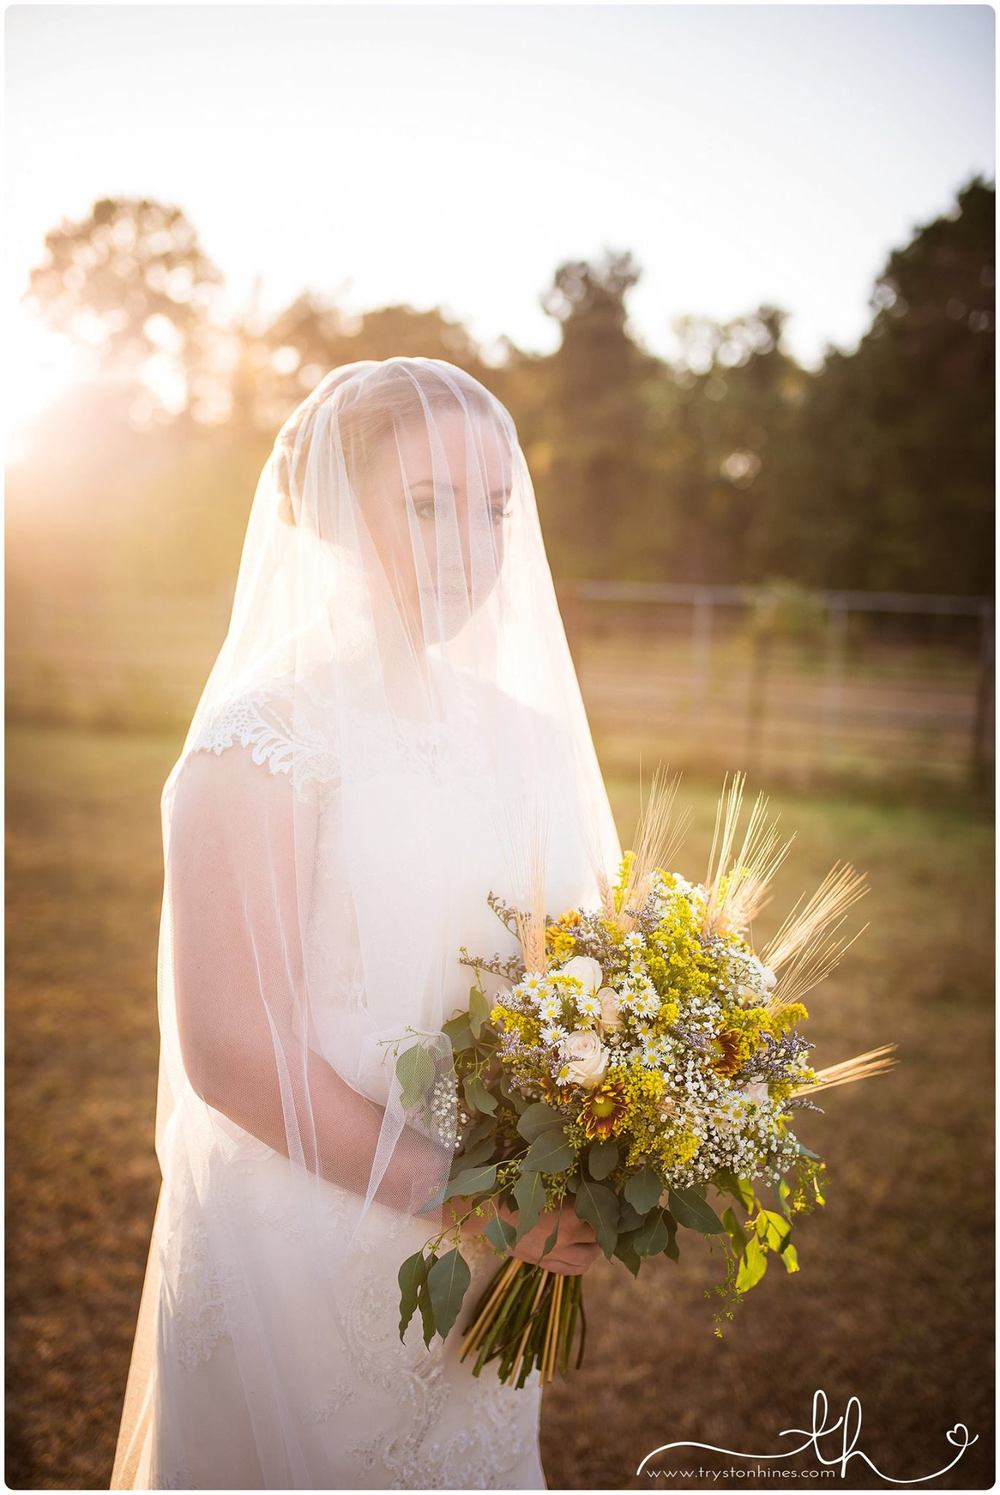 Tryston Hines Photography , from  Brittani 's bridals at The Barn